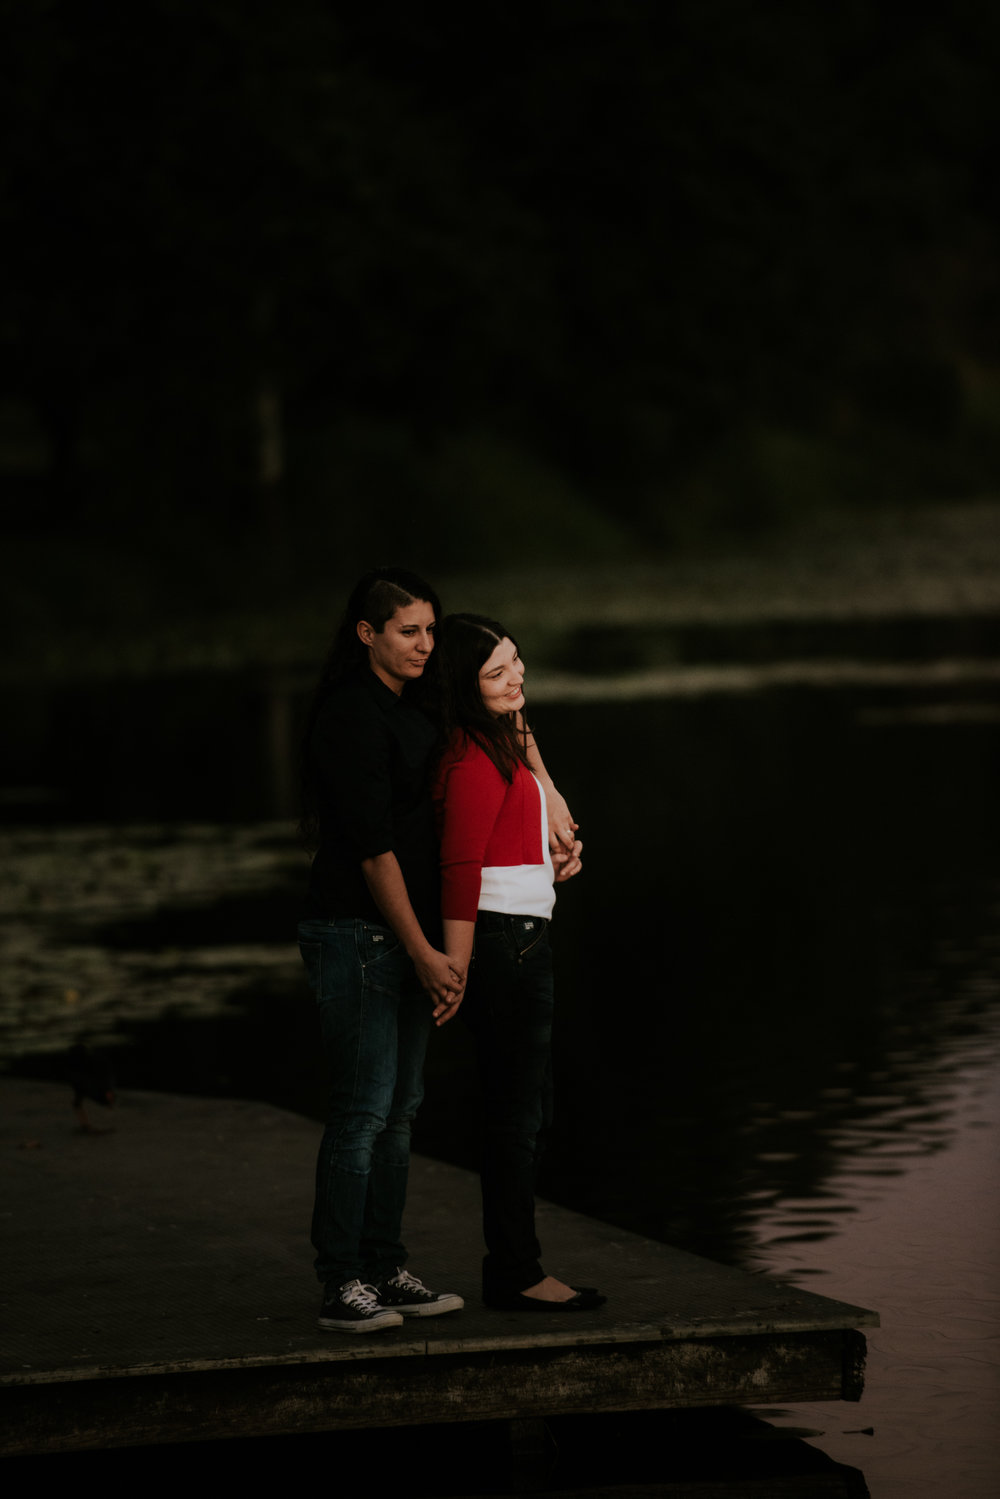 Brisbane Wedding Photographer | Engagement-Elopement Photography-32.jpg